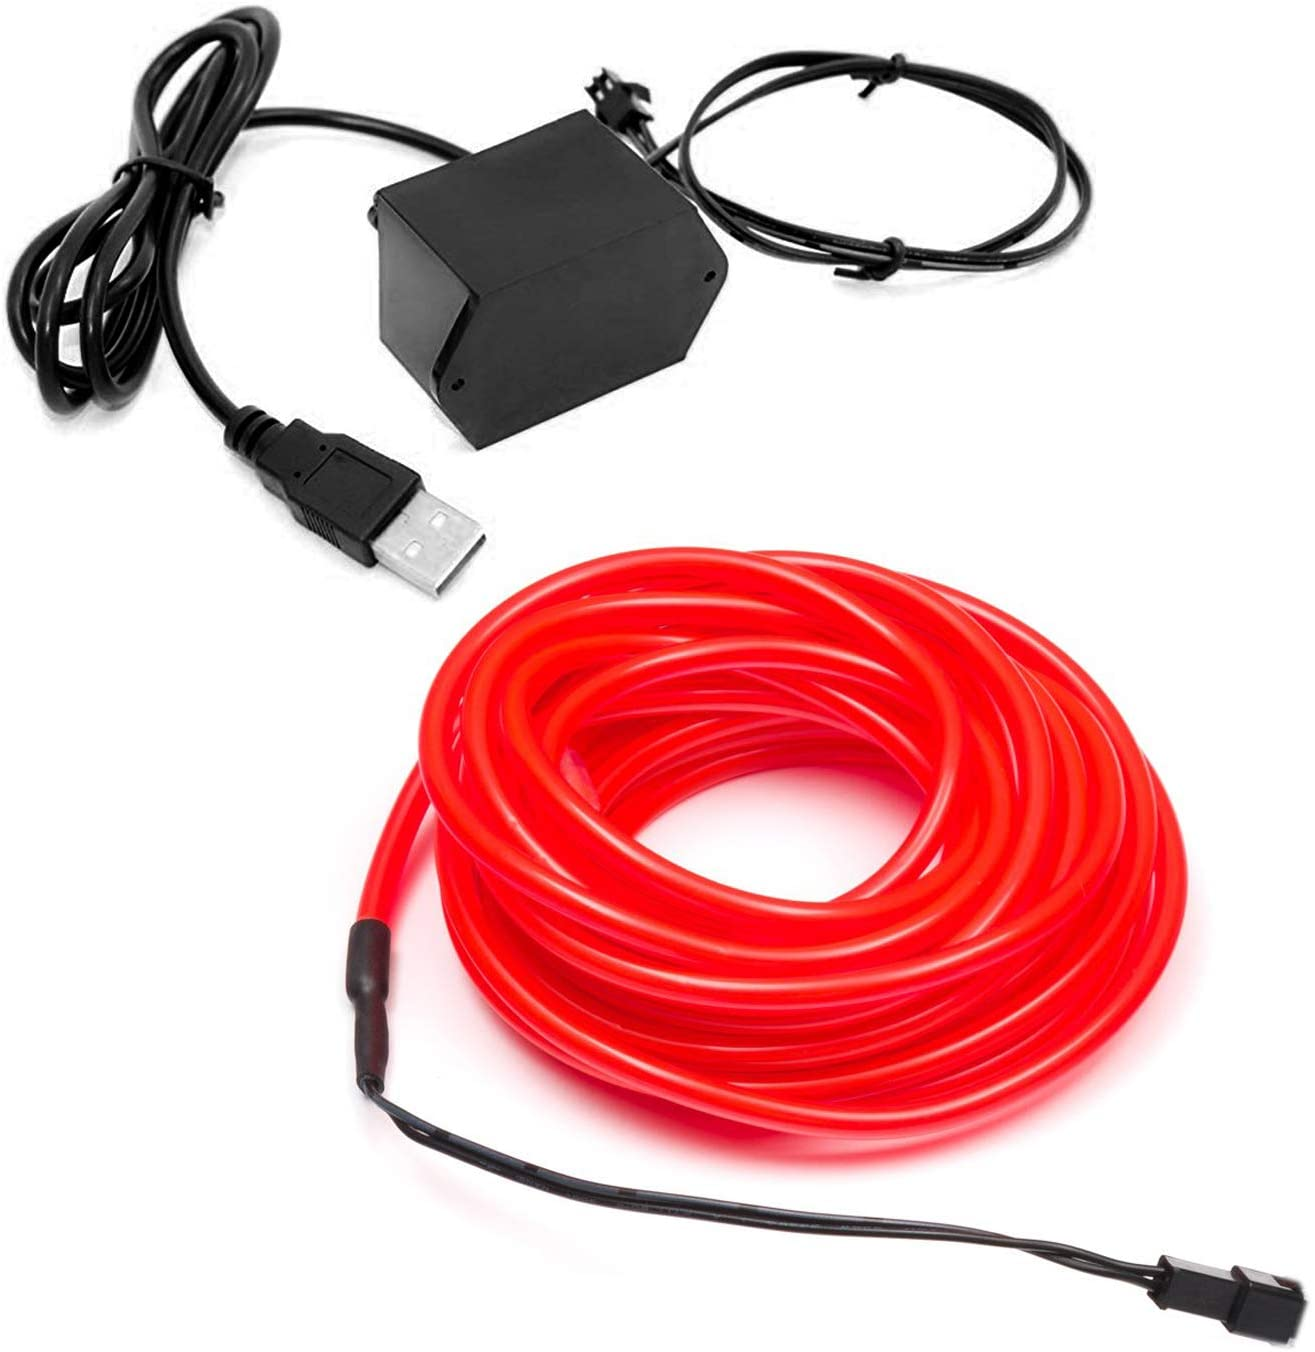 3m/9.8ft Extra Large 5.0 mm Thick - Red Neon LED Light Glow EL Wire - Powered by USB Port - Craft Neon Wire String Light for DIY Project Costume Accessories Cosplay